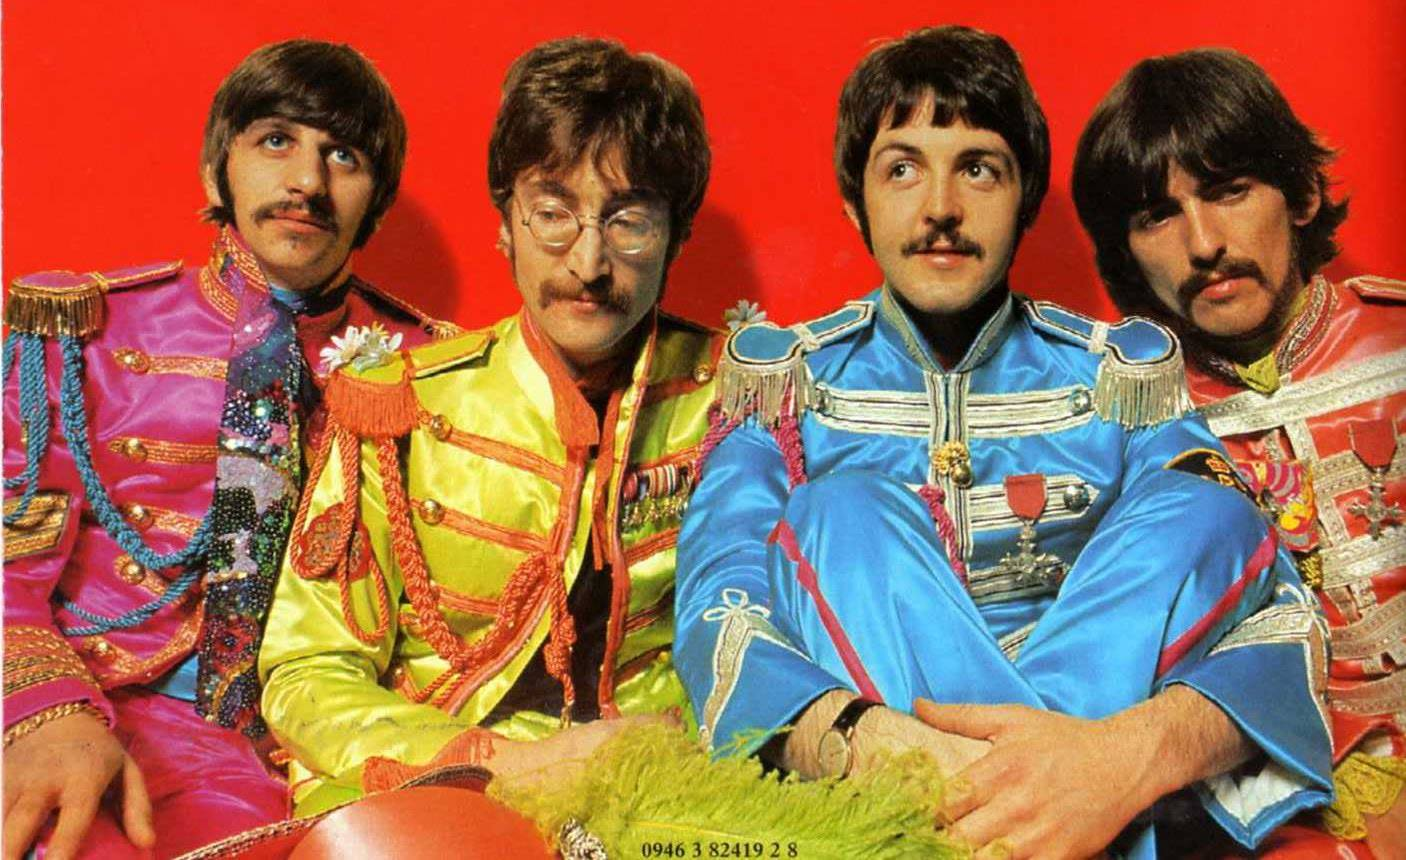 sgt pepper 50th anniversary vinyl review